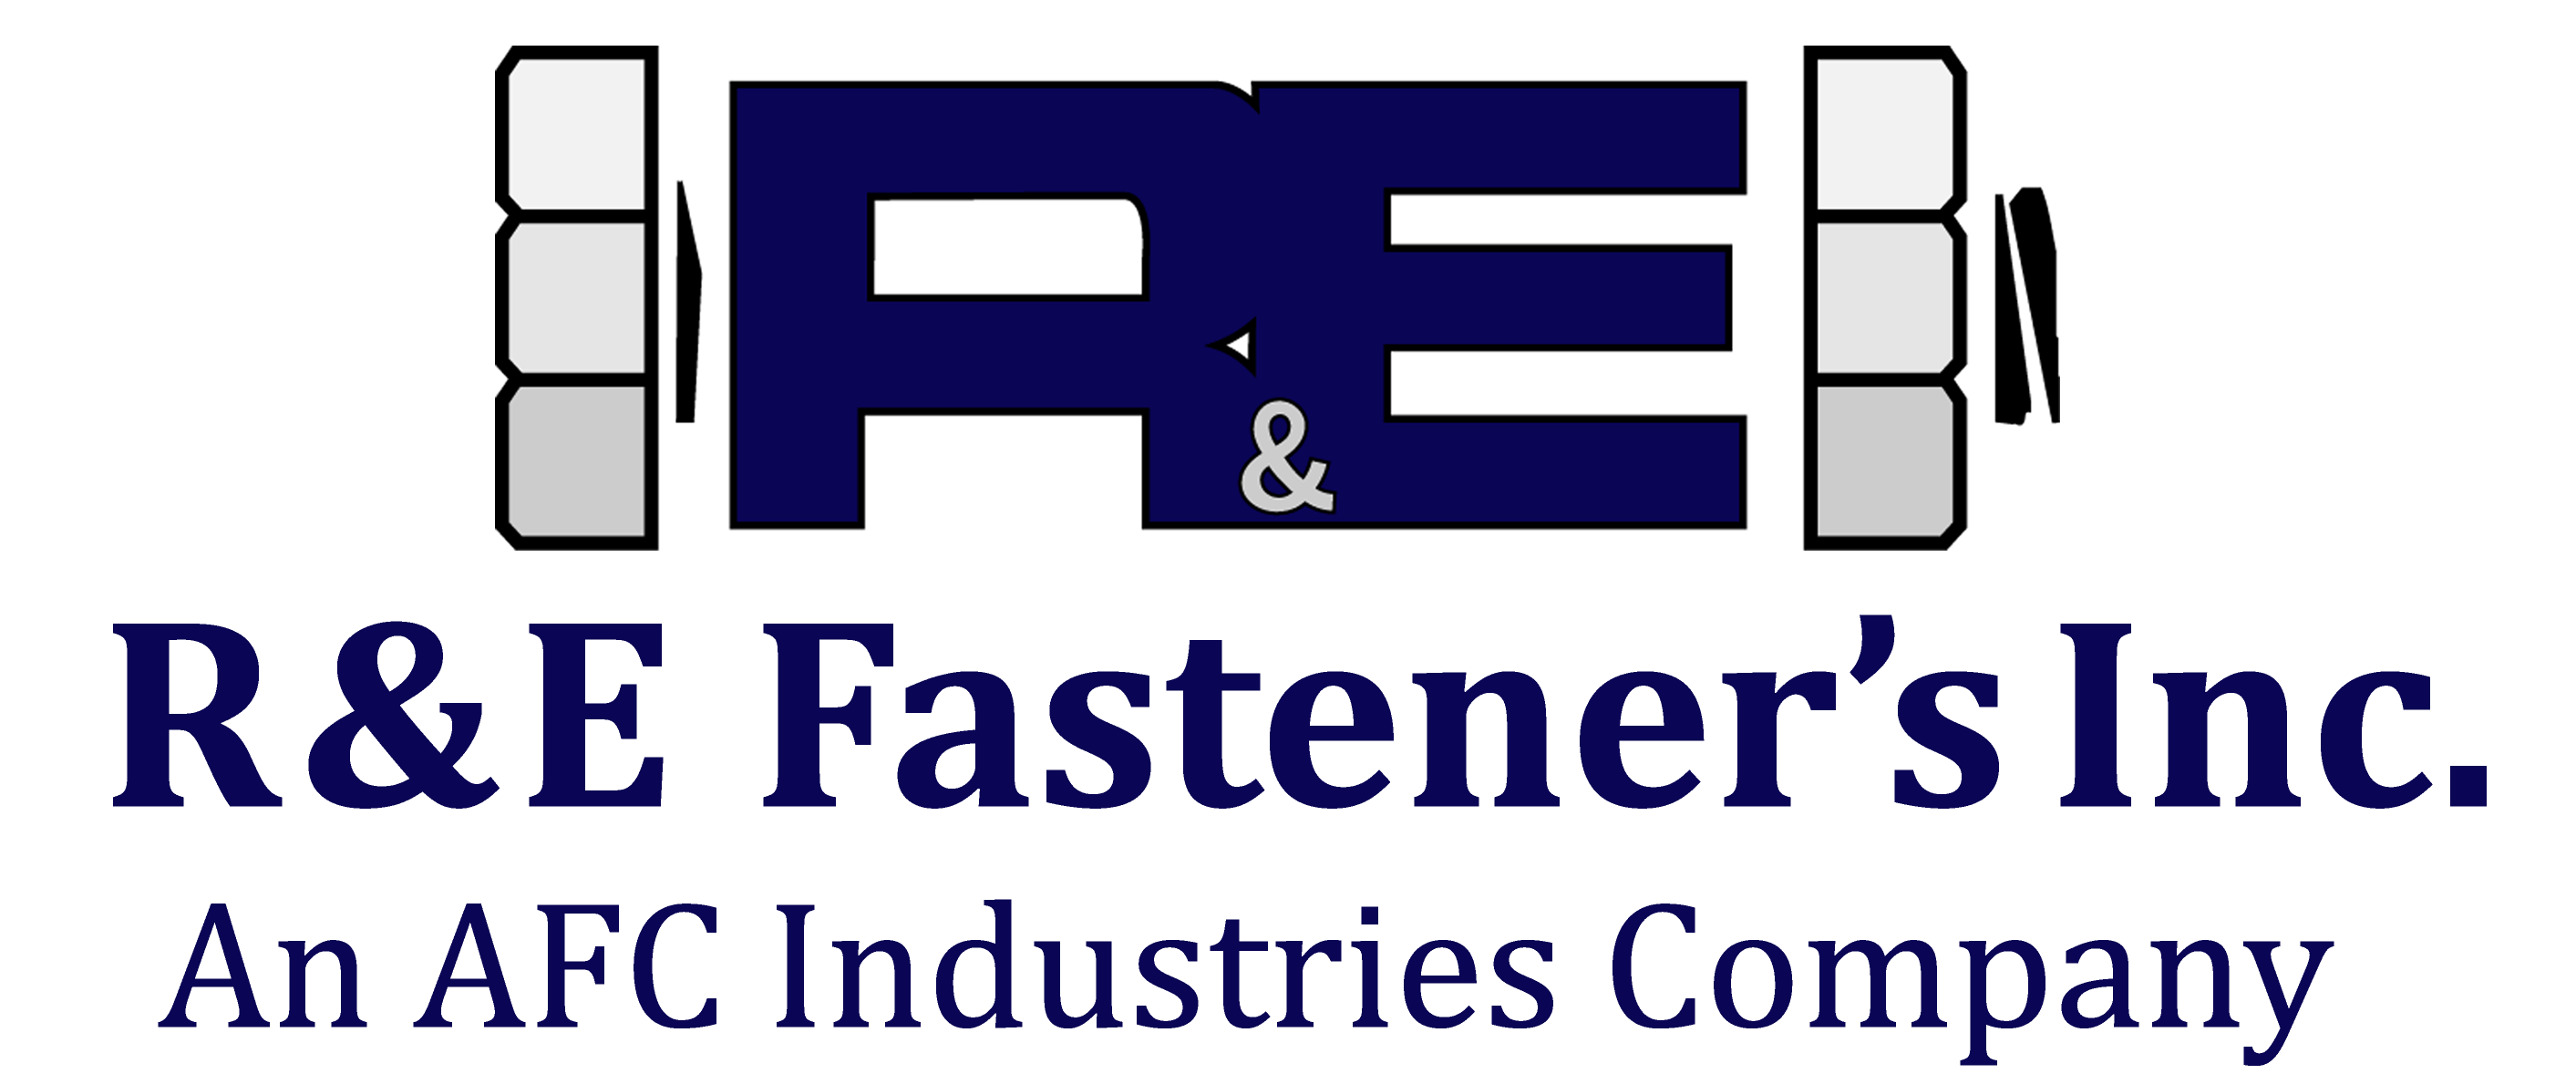 R_E_Fasteners_centerd_revision_17_oct_2017_final.png